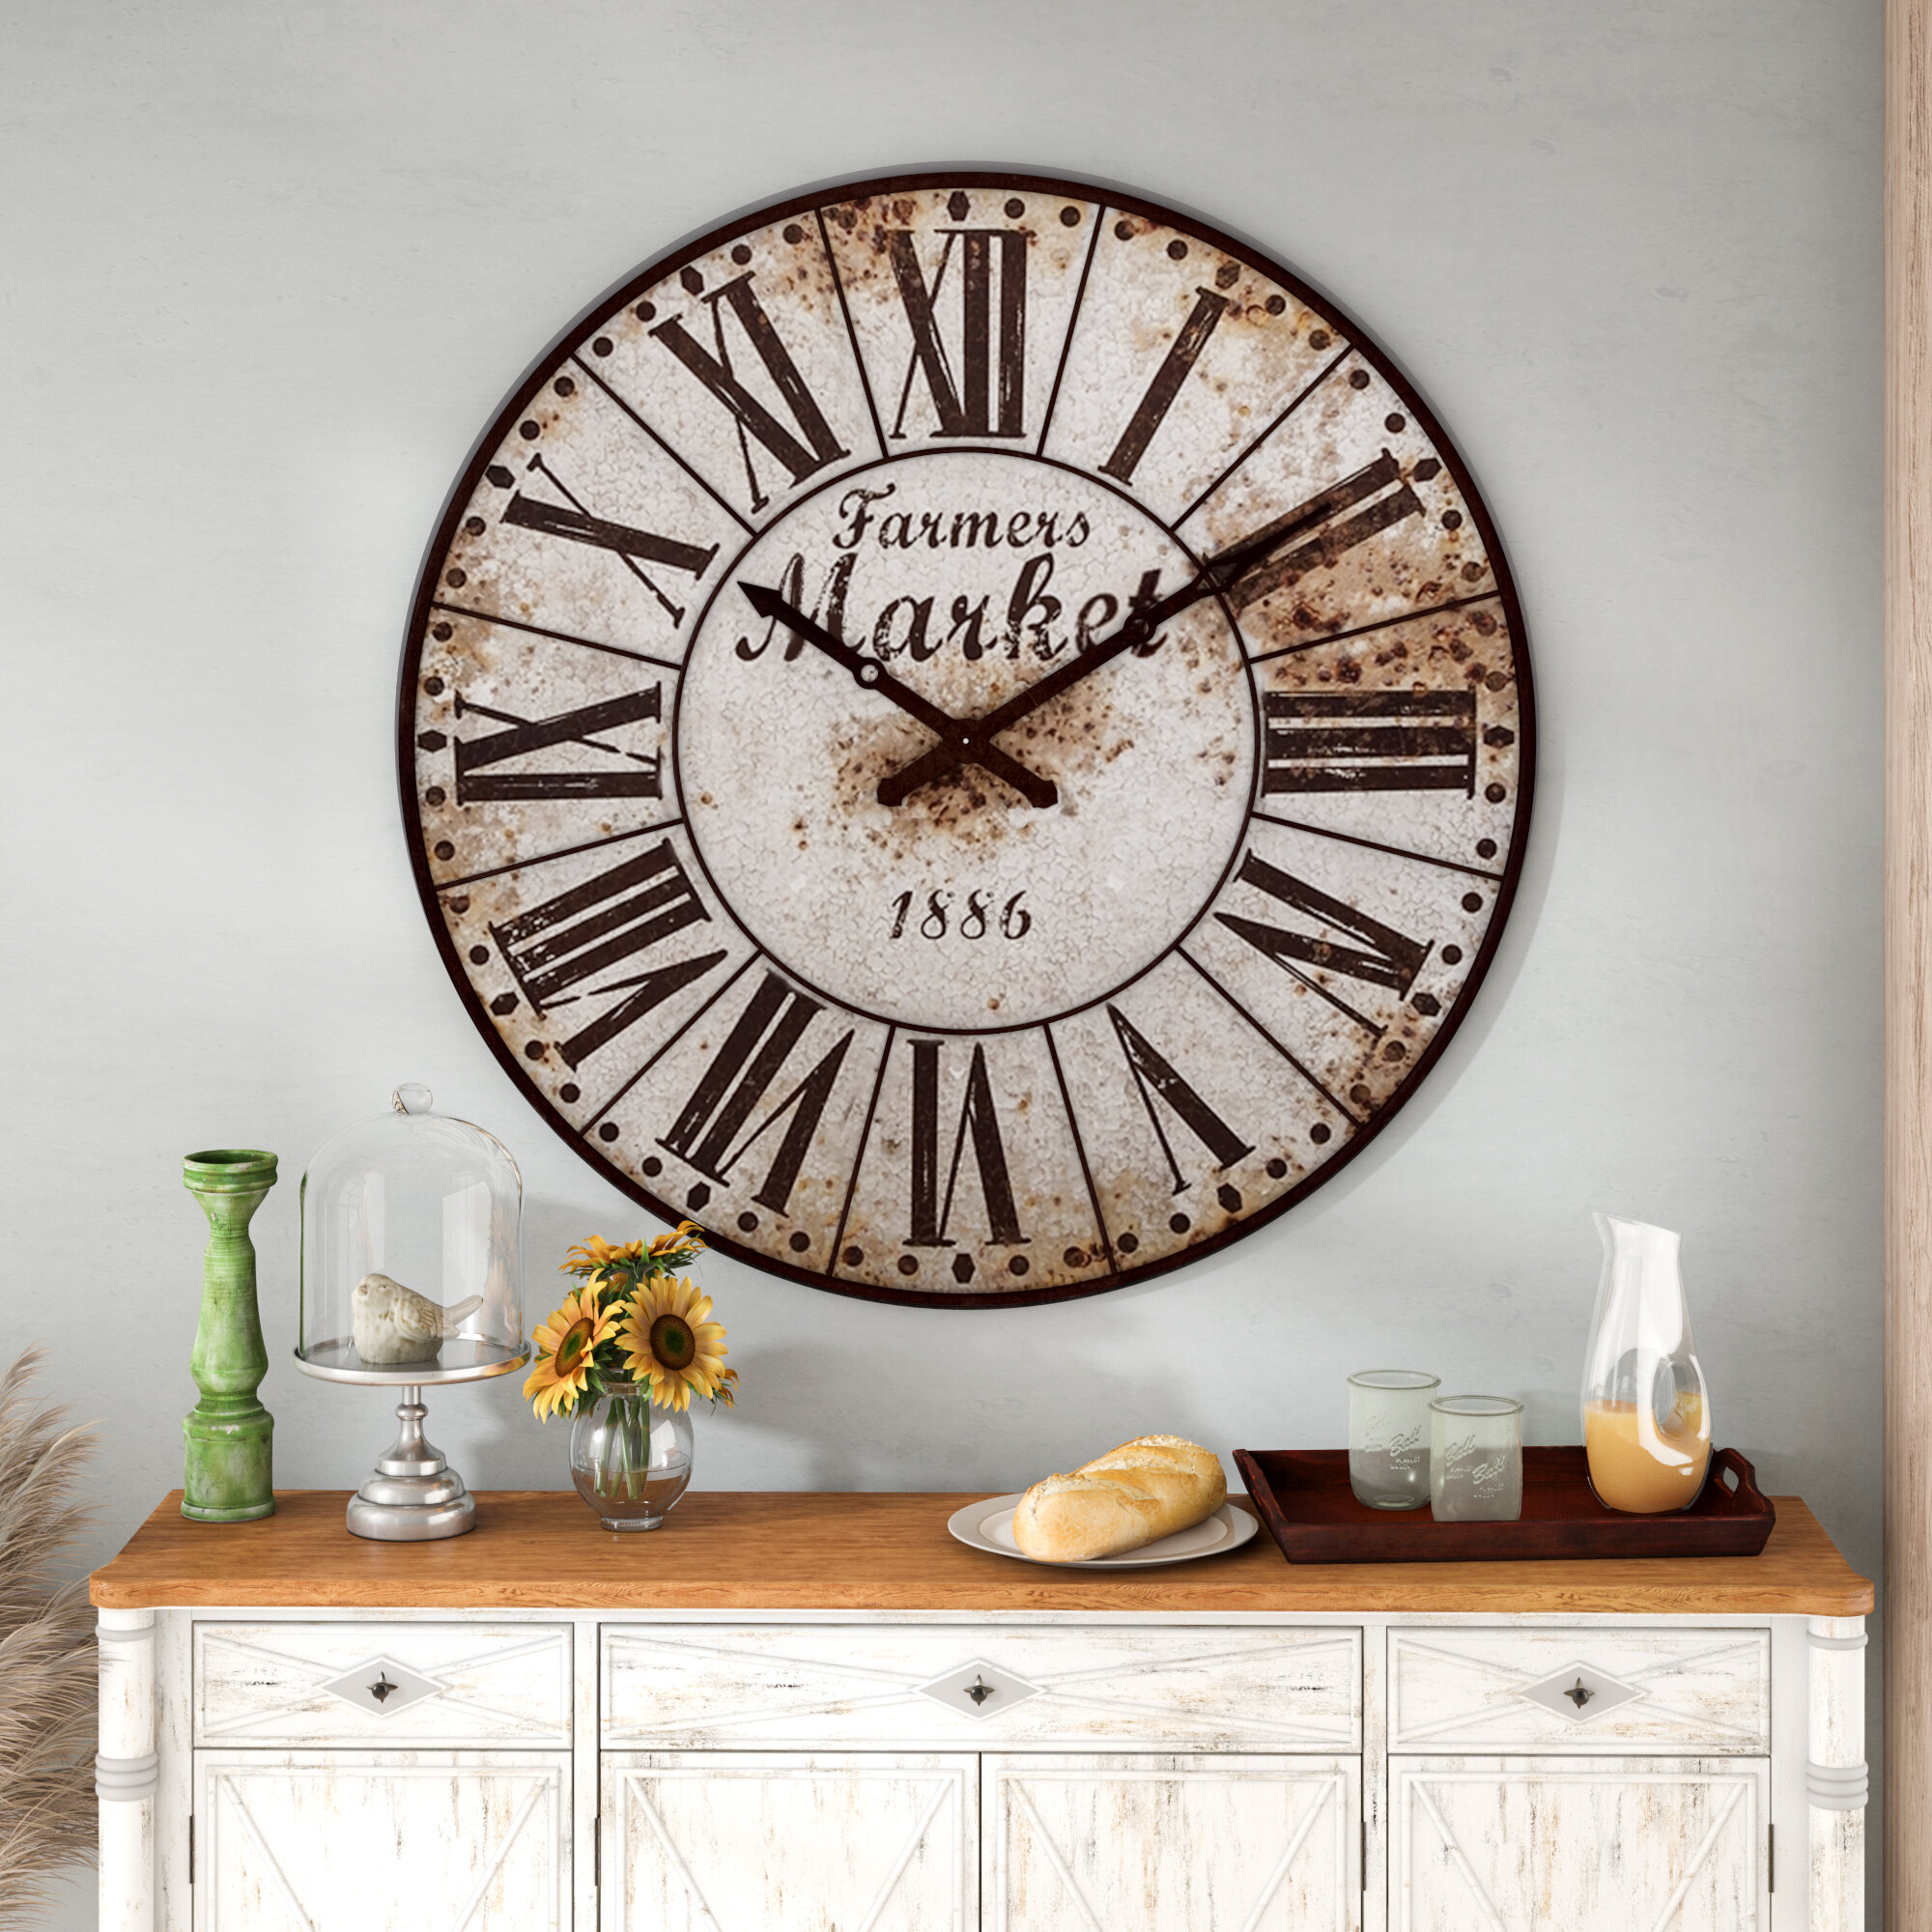 August Grove Midcre 47 Farmers Market Oversized Wall Clock